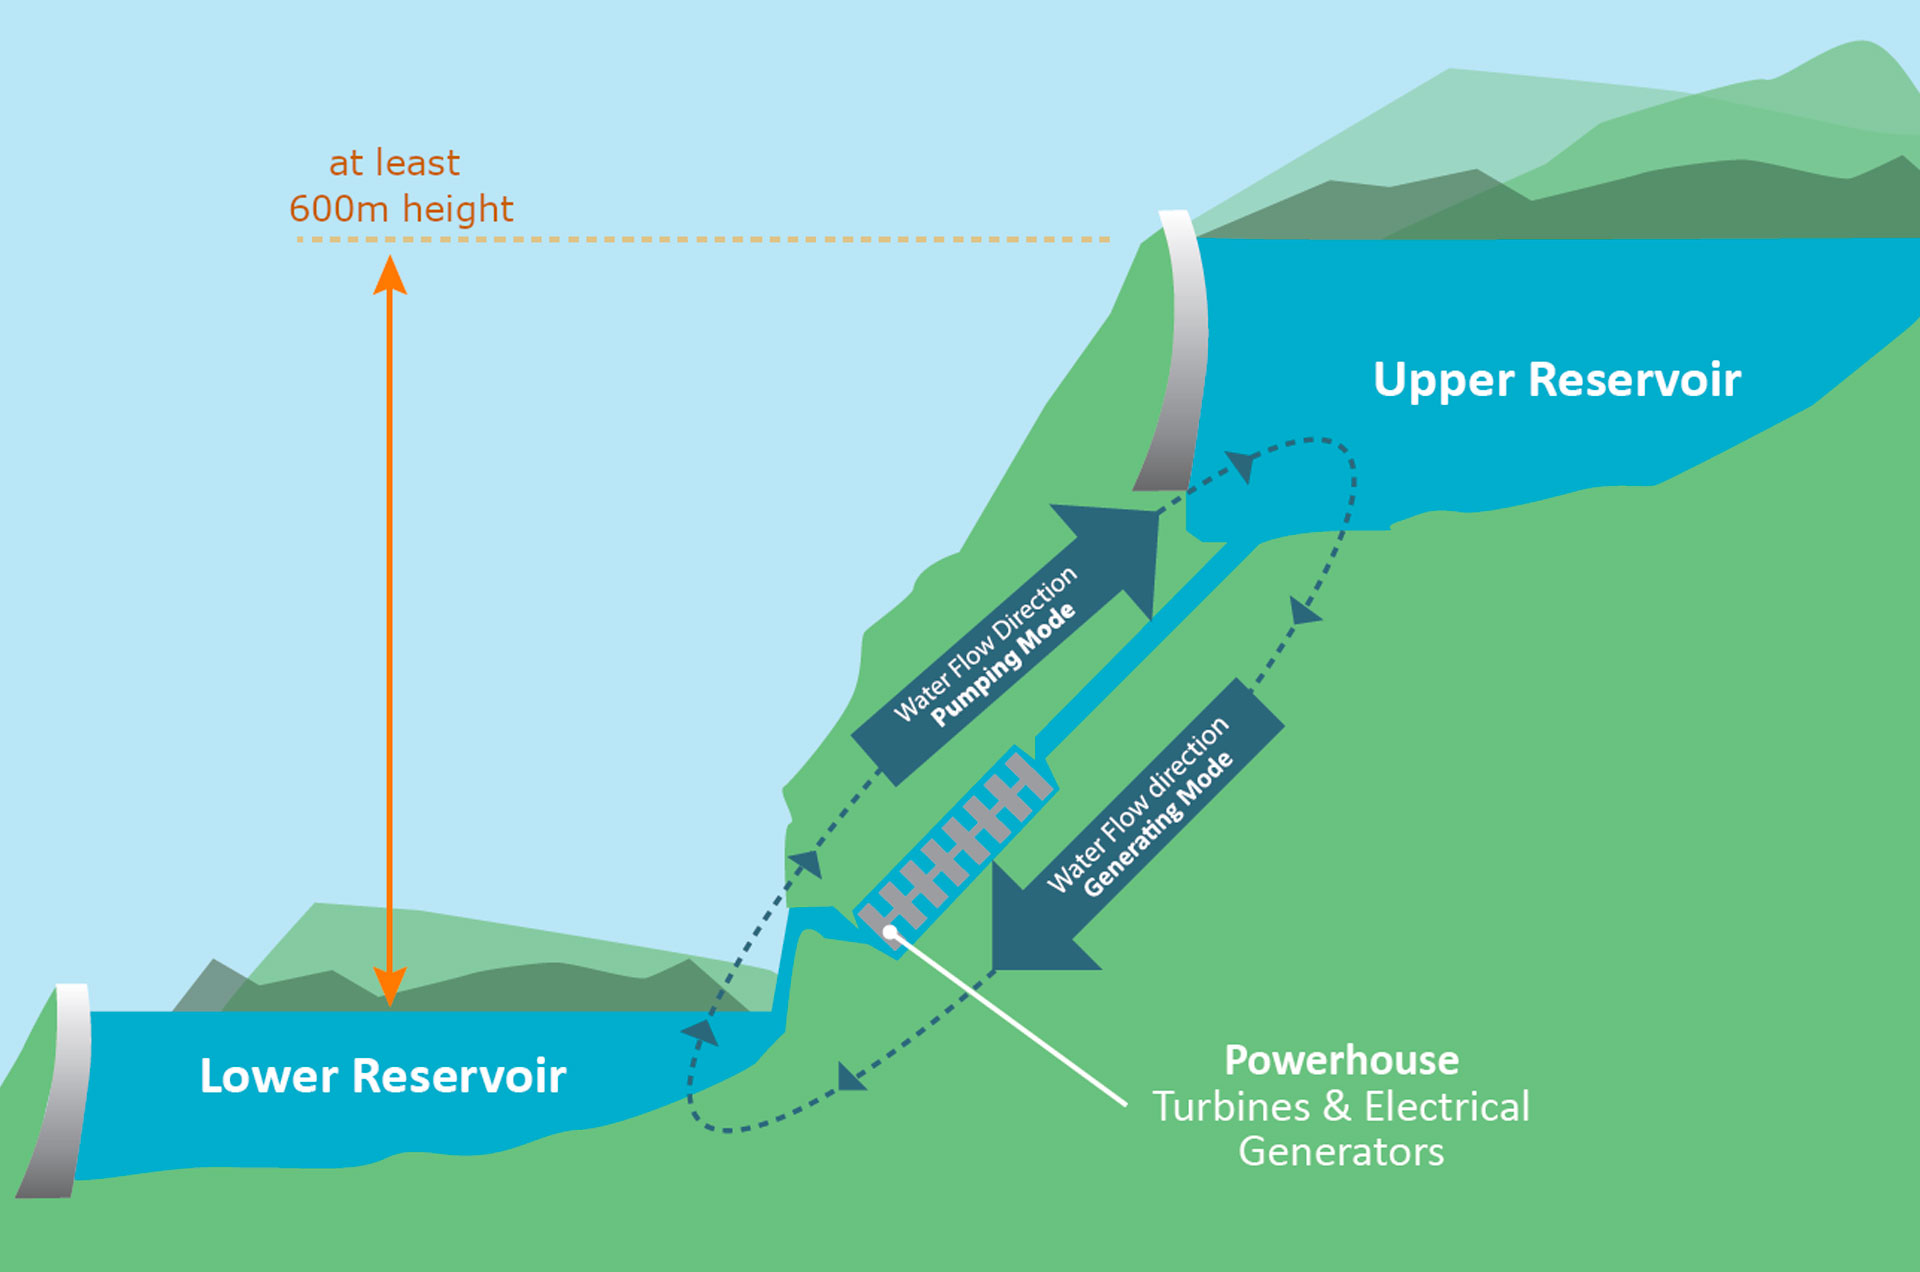 Diagram depicting how the Oven Mountain project will work